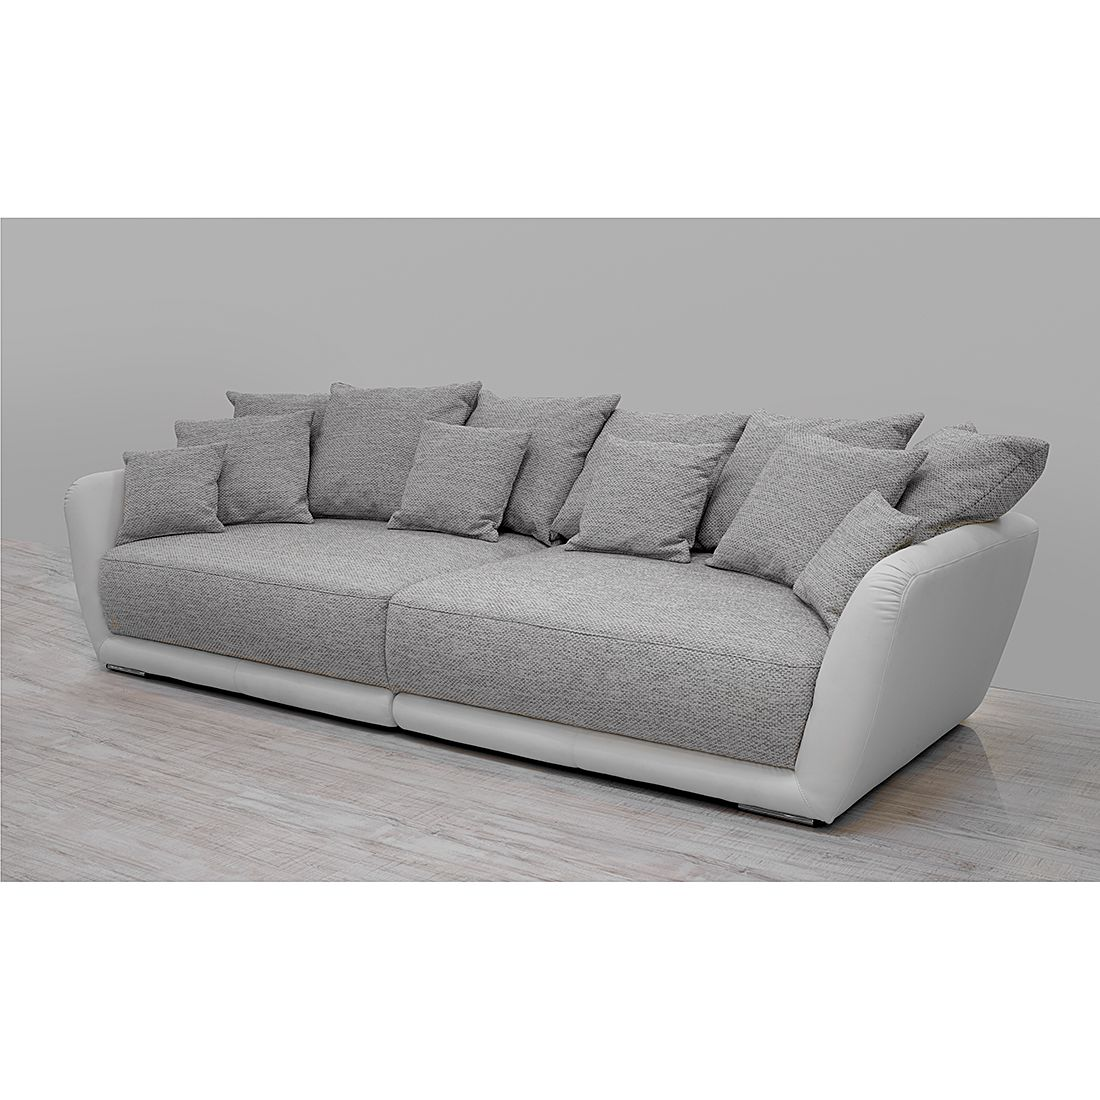 Big Sofa Online Shop Big Sofa Struktur Beautiful Tom Tailor Couch Sofa Ecksofa